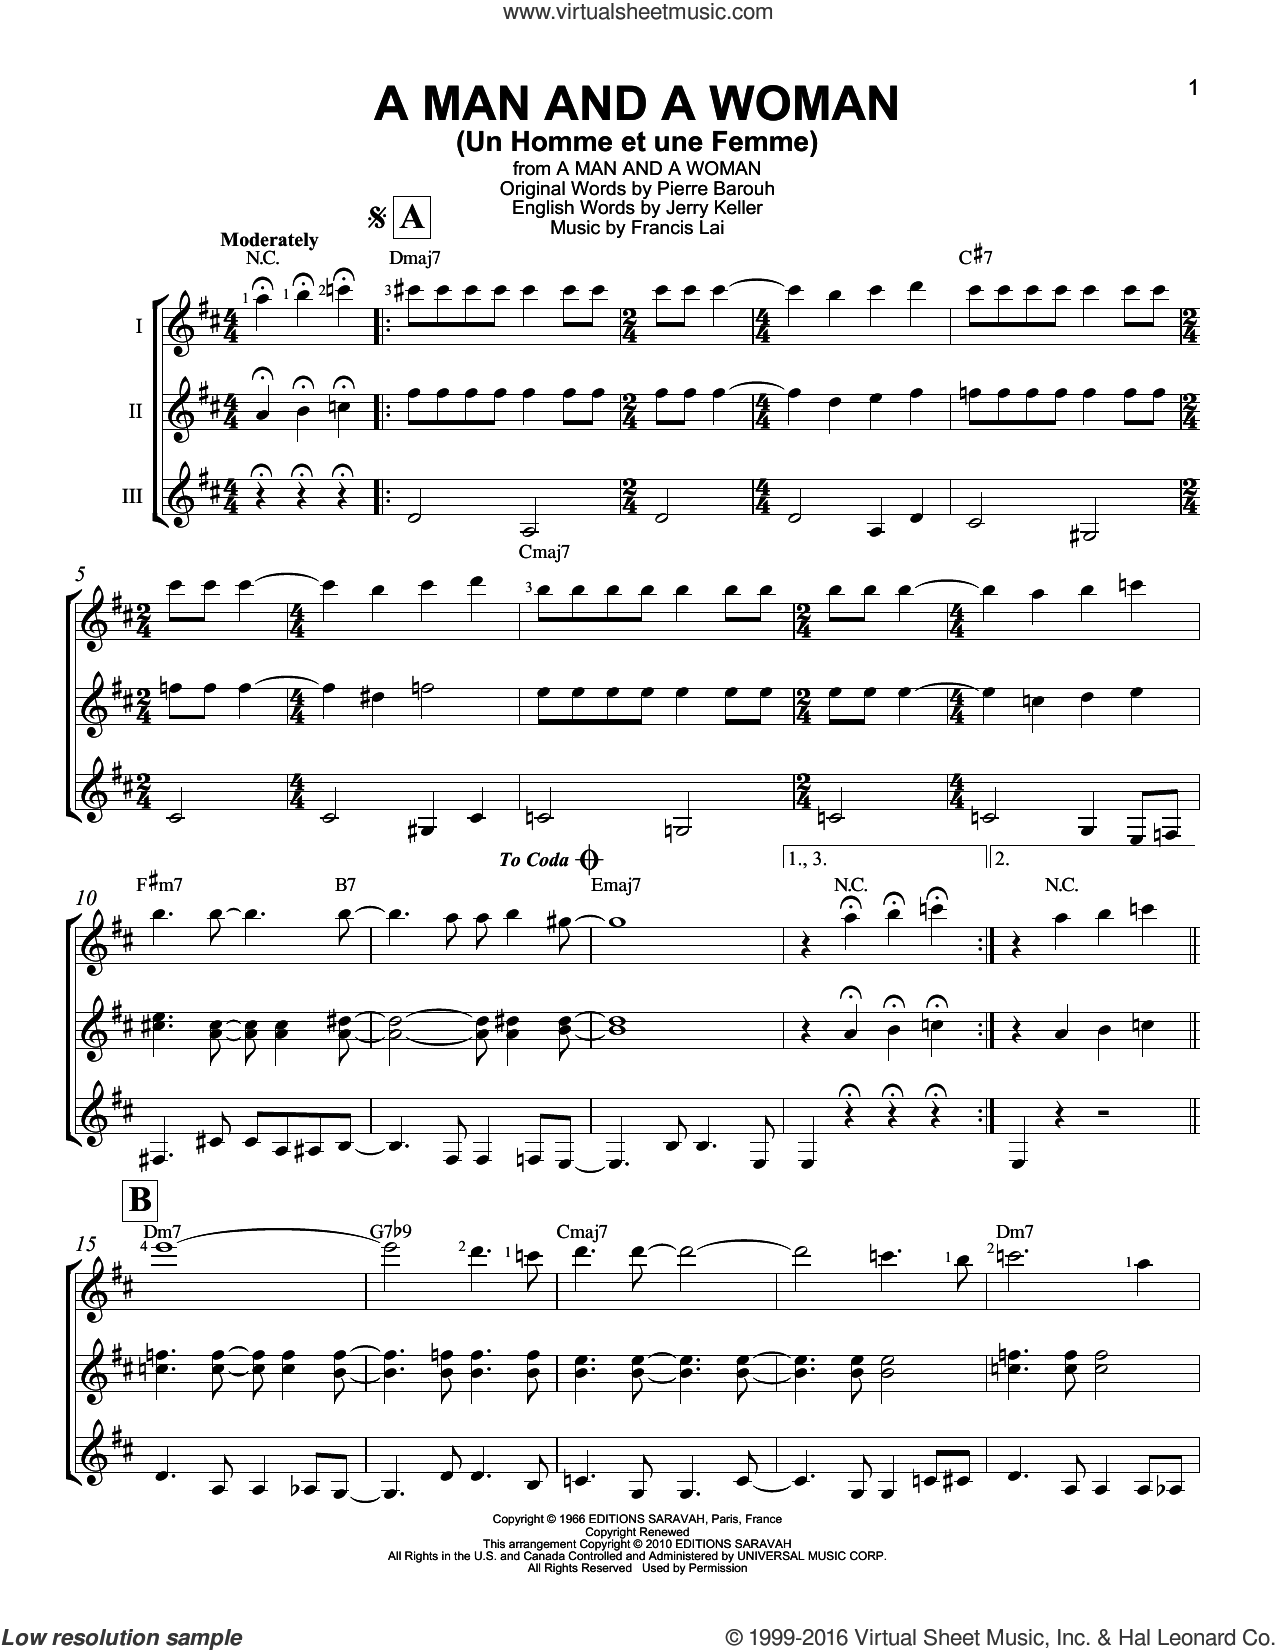 A Man And A Woman (Un Homme Et Une Femme) sheet music for guitar ensemble by Francis Lai and Herbie Mann and Tamiko Jones, intermediate guitar ensemble. Score Image Preview.